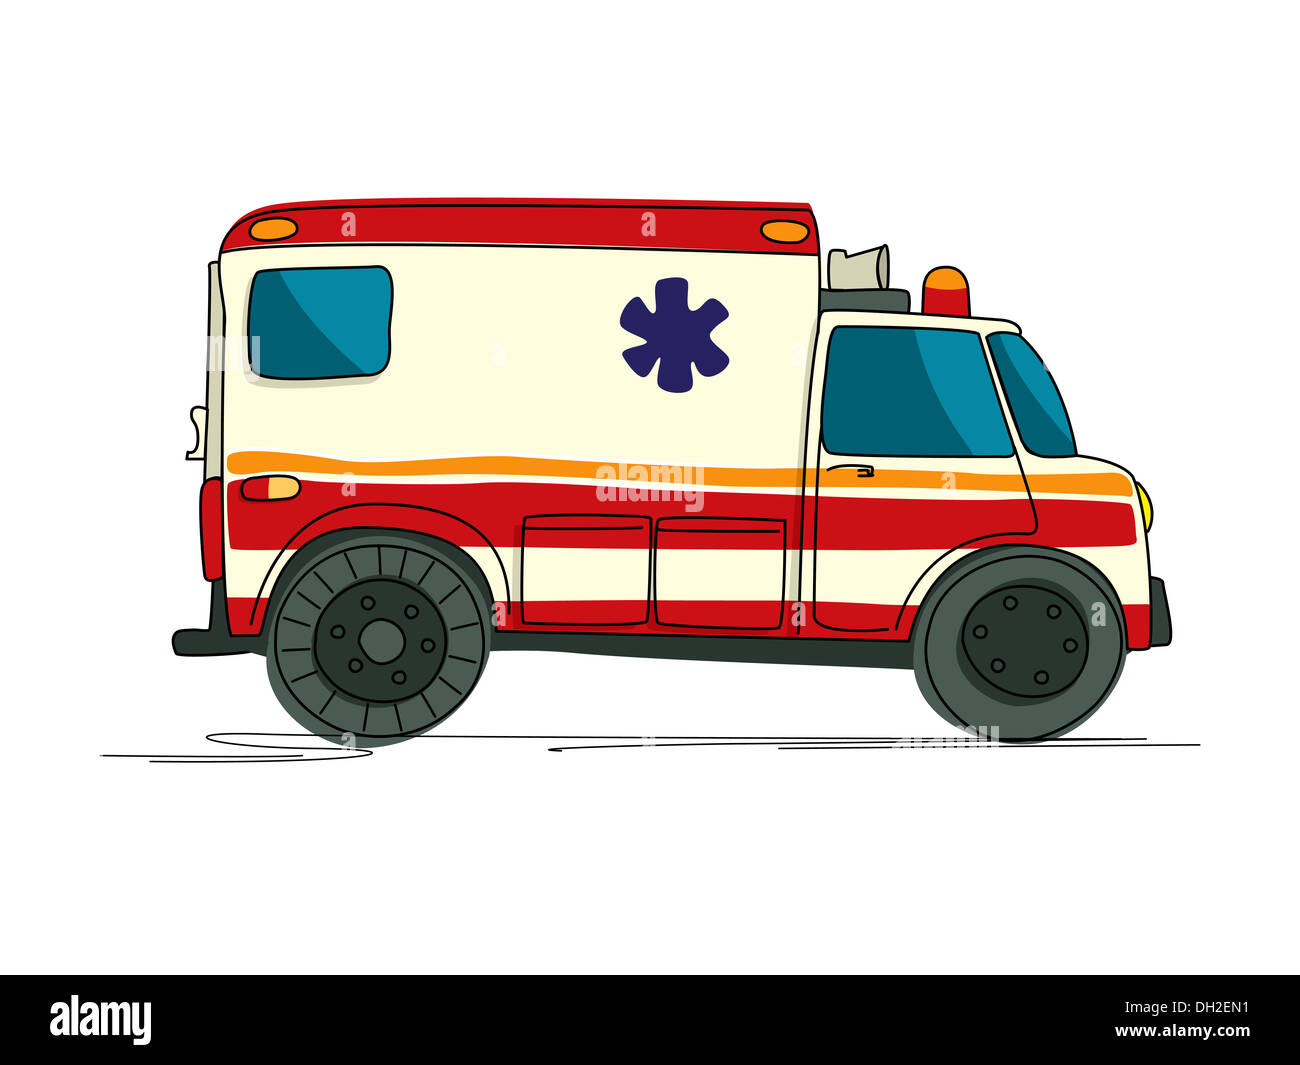 Traffic Accident Drawing Aid Stock Photos & Traffic Accident ...